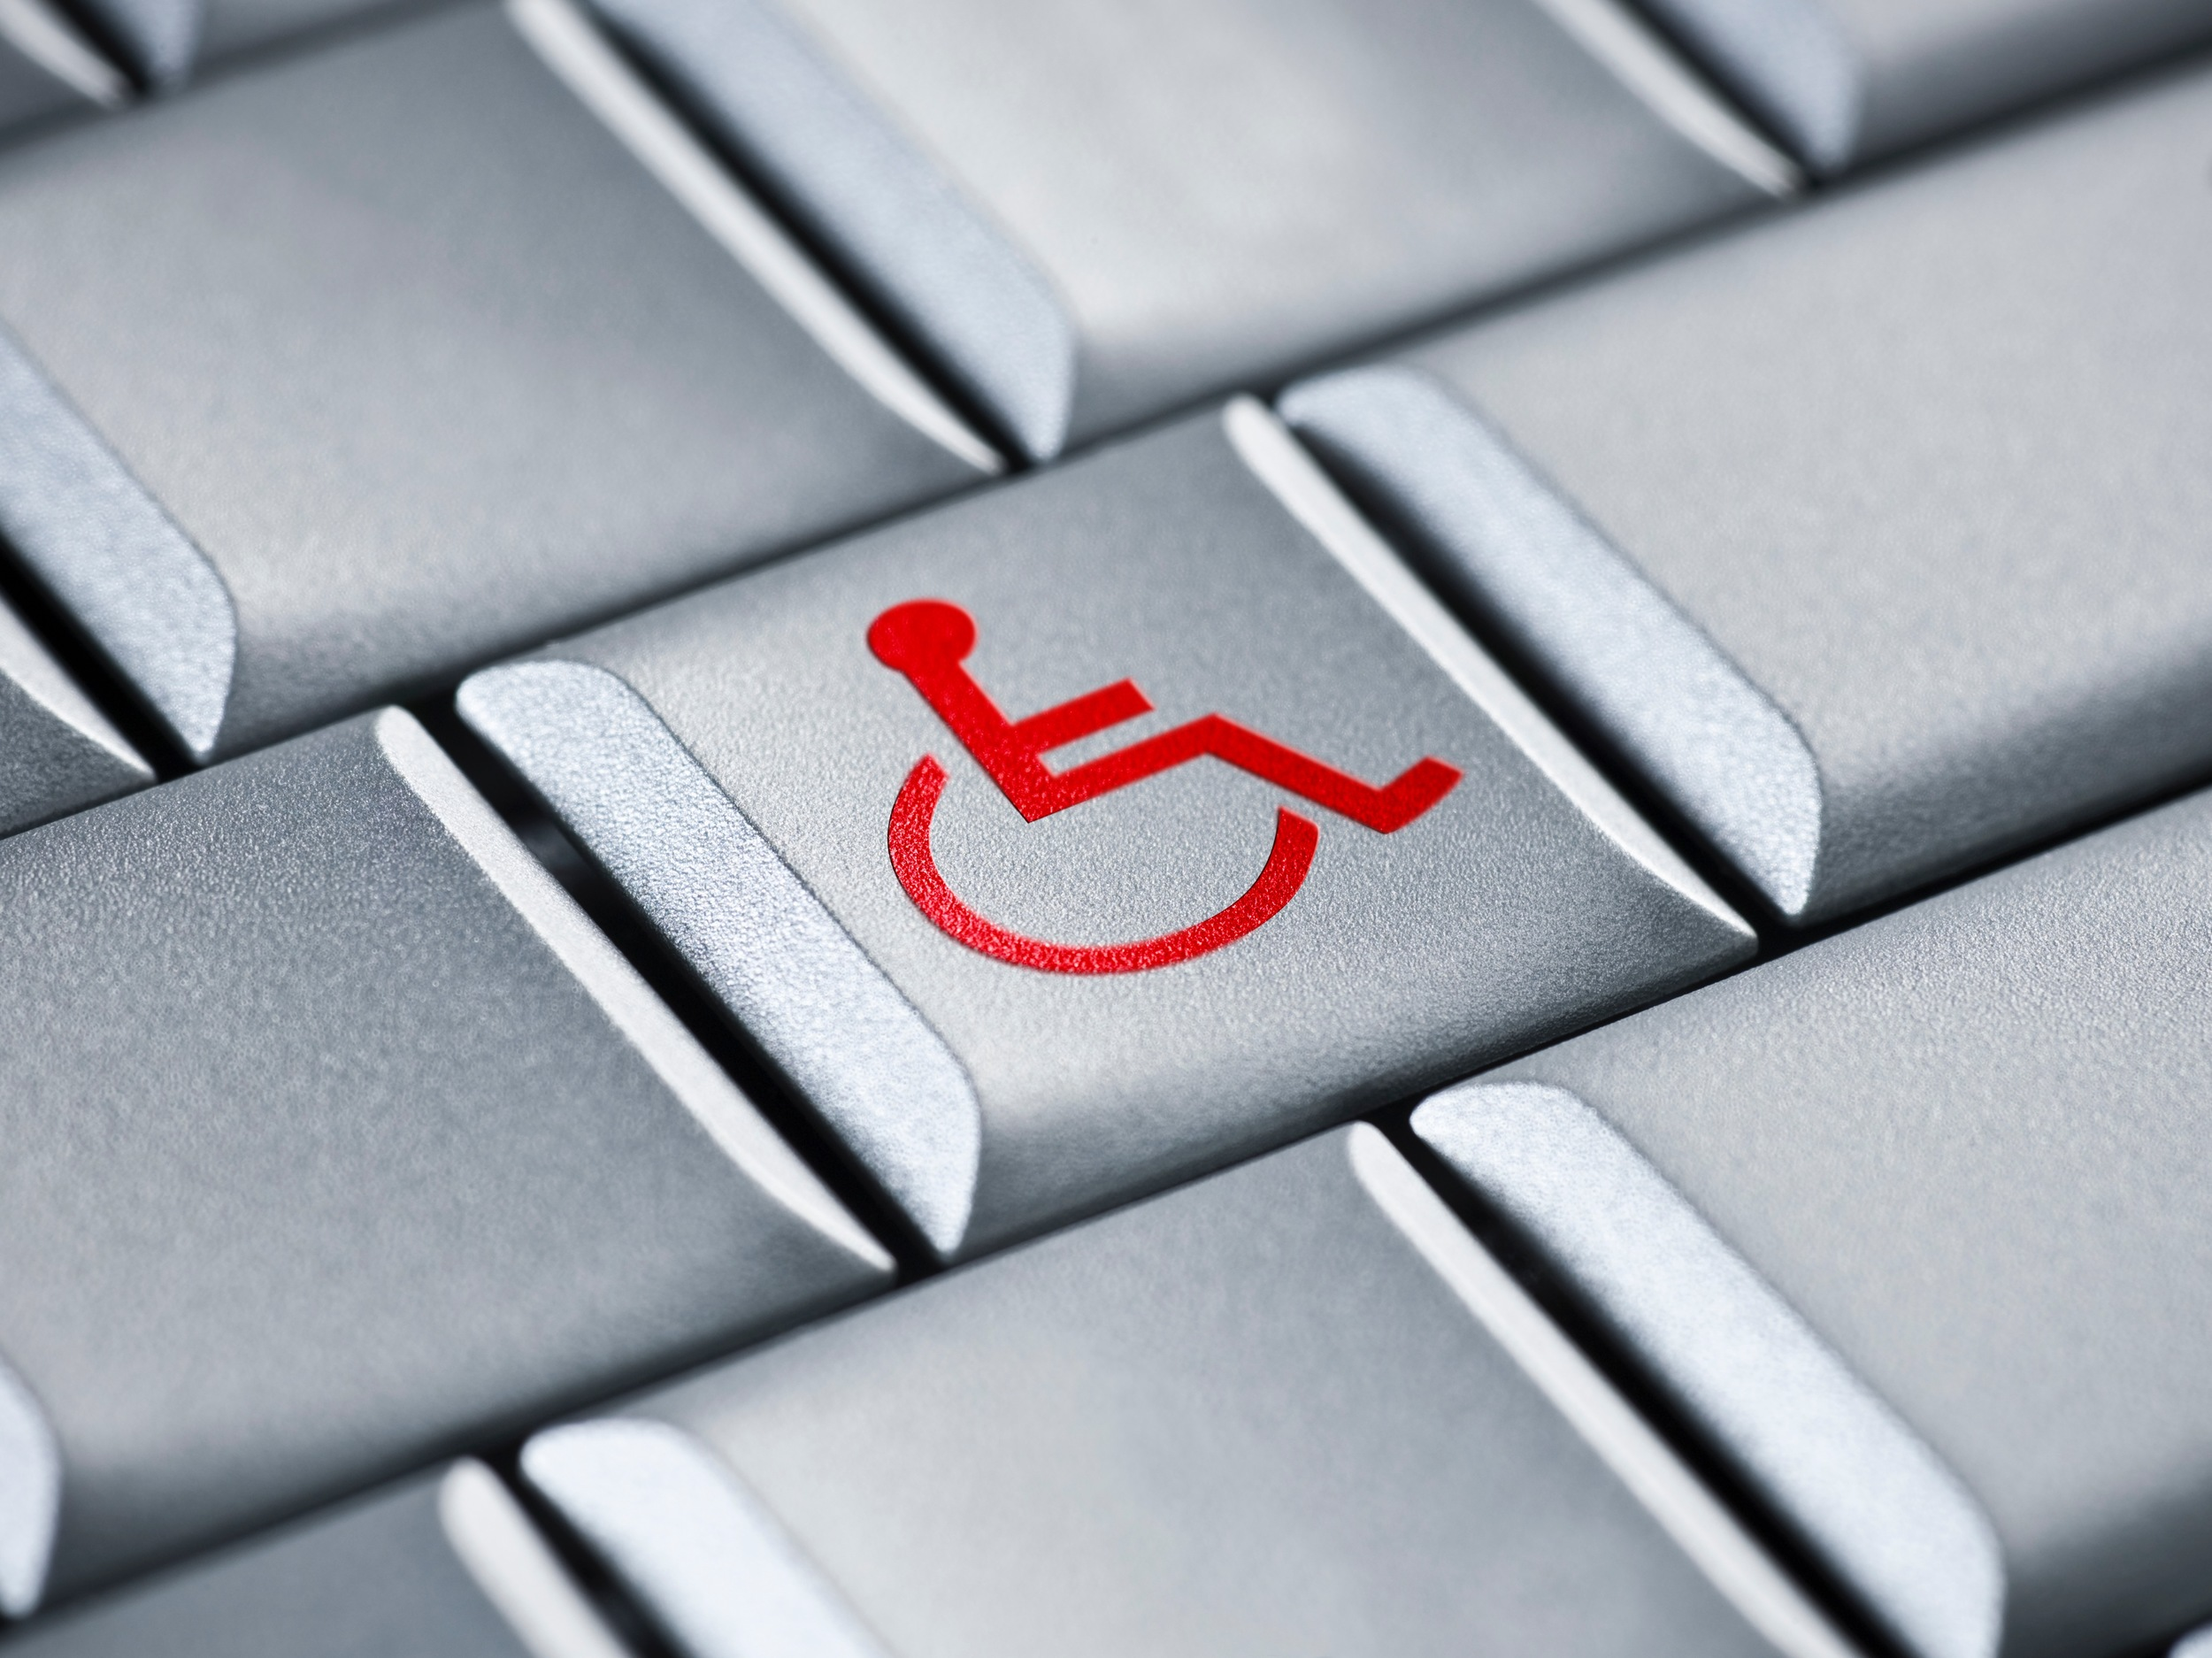 Closeup photo of a gray computer keyboard with a red wheelchair symbol on the middle key